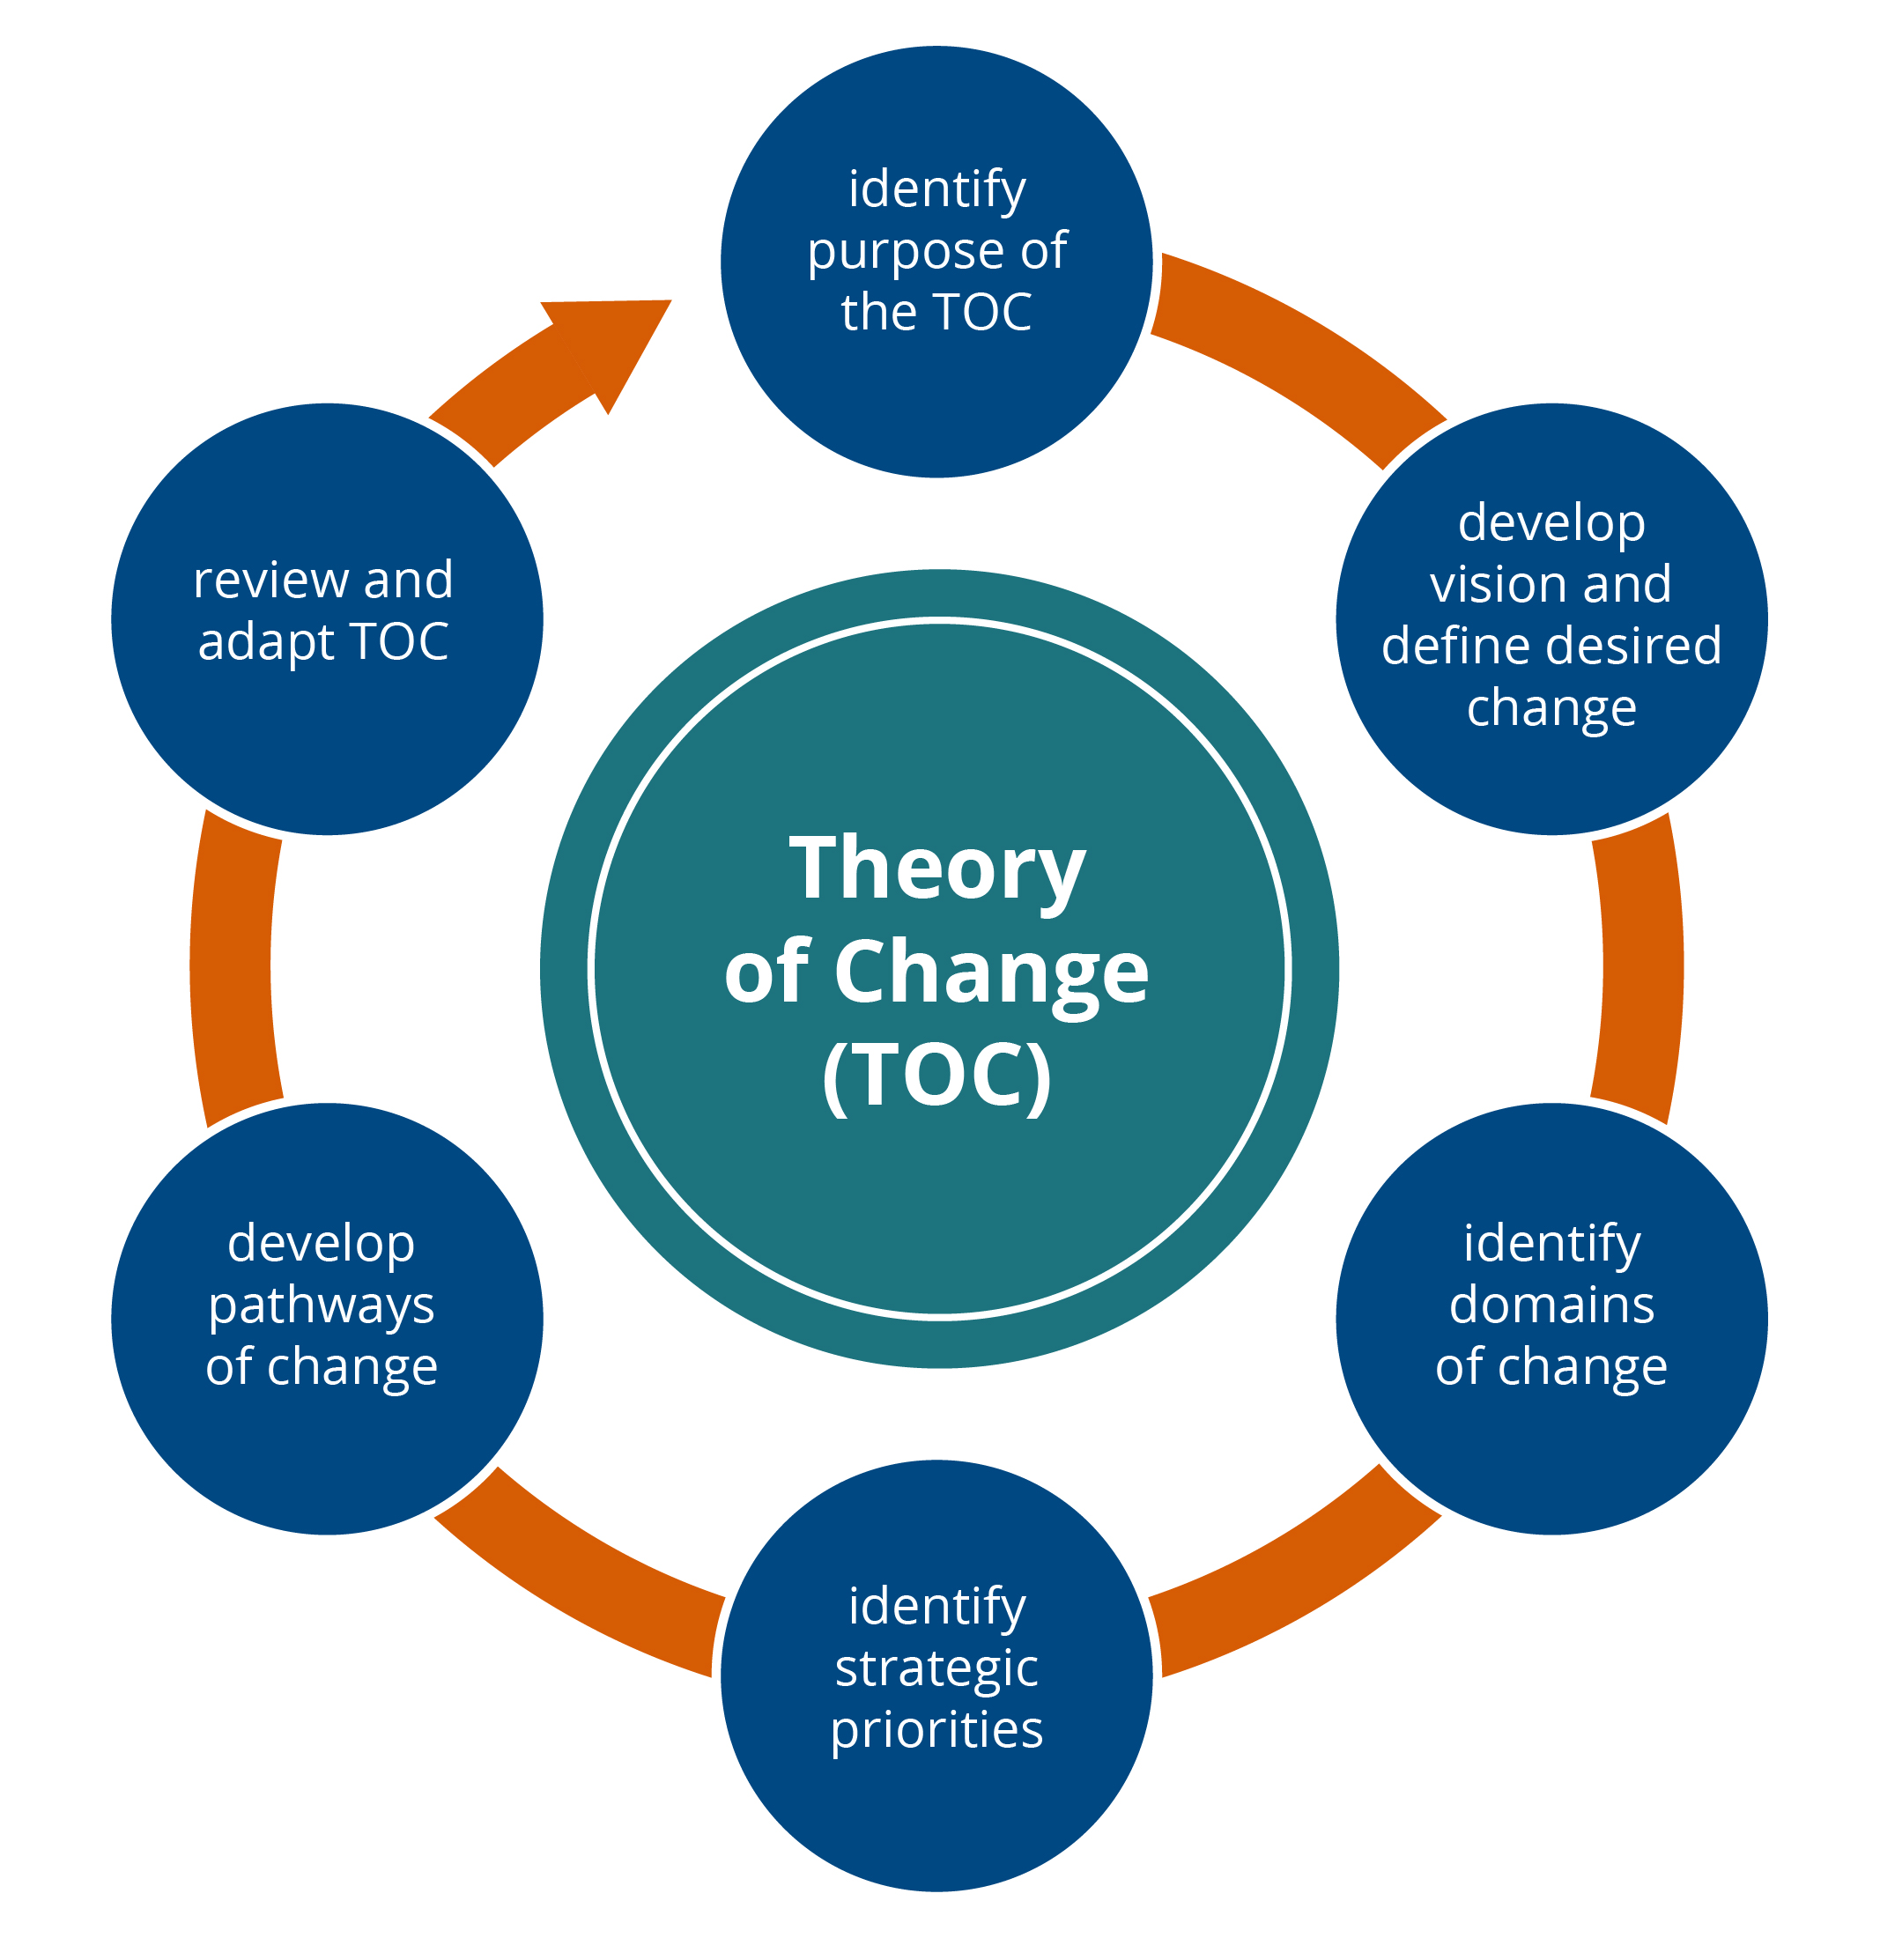 Lens on Educators - What Can You Do to Impact the Learners Around You - Theory of Change